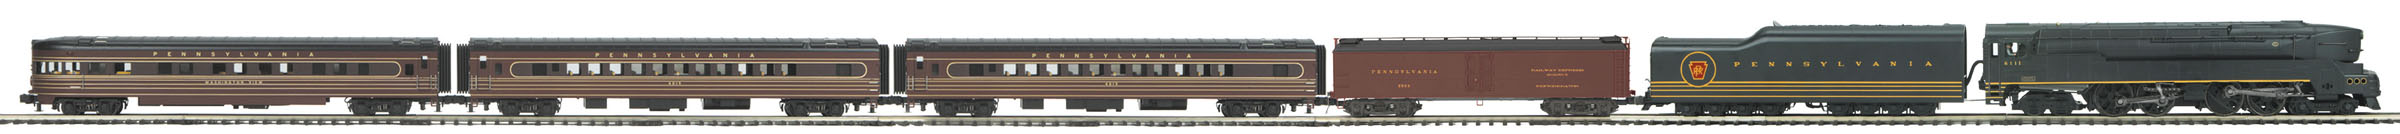 20-3227-1 | MTH ELECTRIC TRAINS